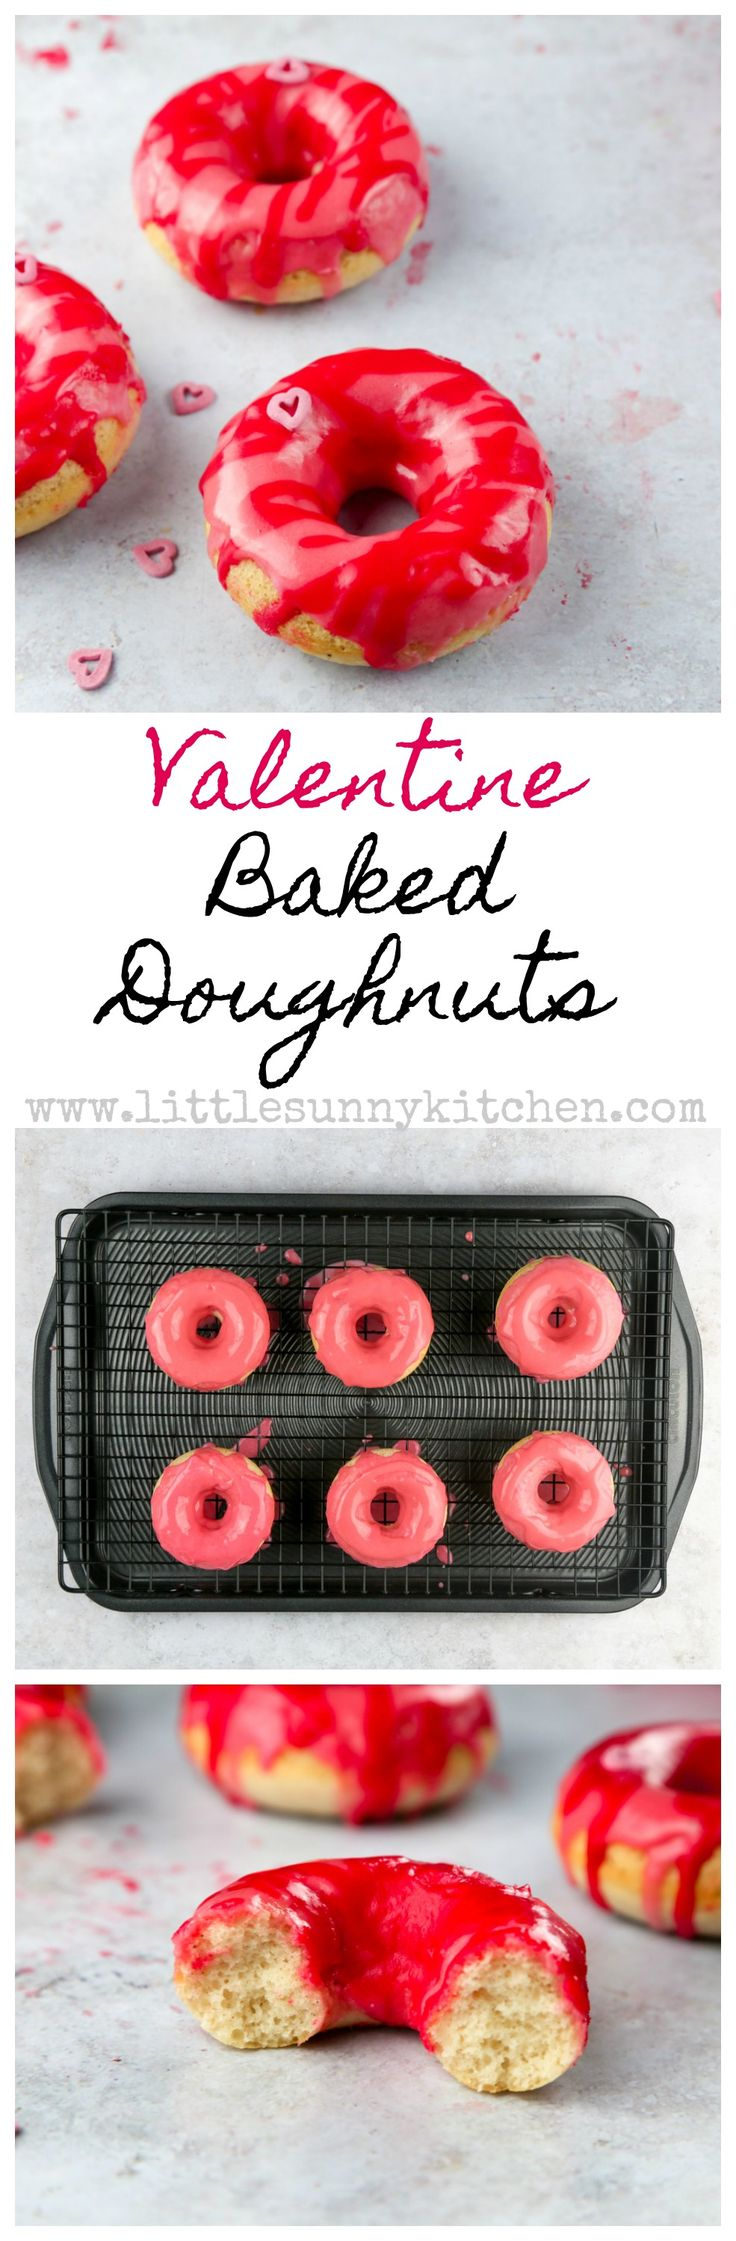 These adorable baked doughnuts are perfect for Valentine's Day!